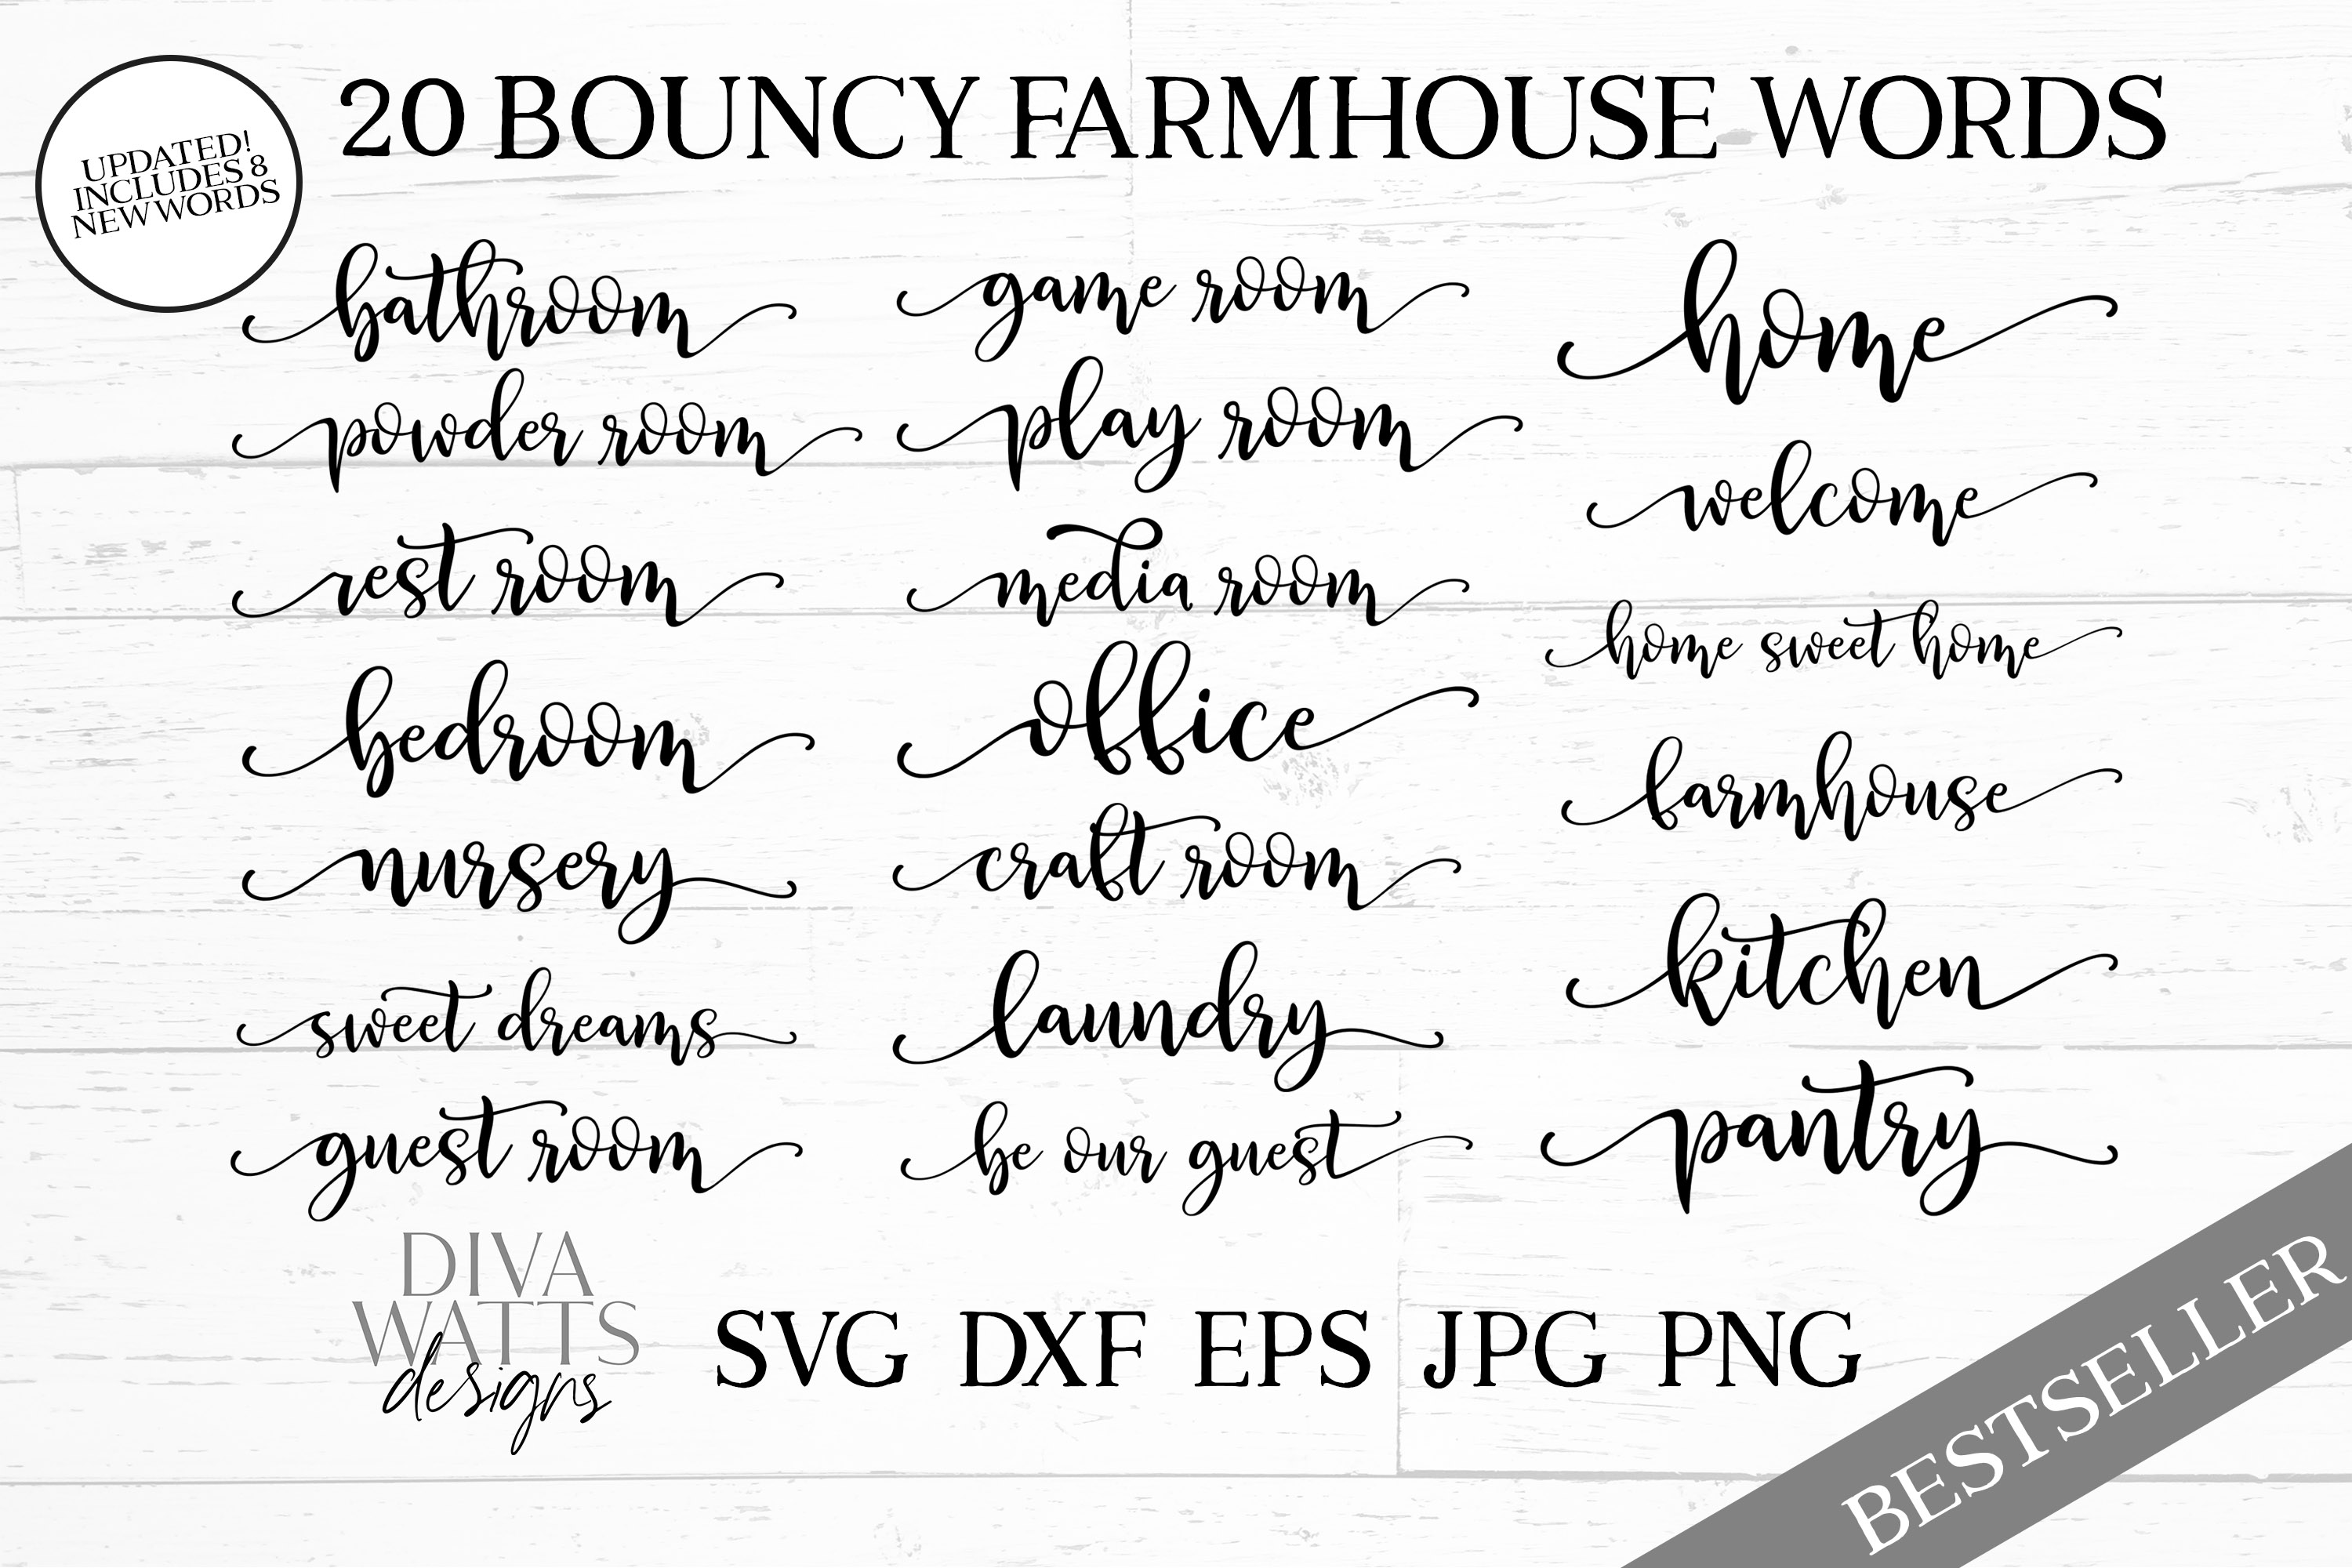 Farmhouse Words Bundle Set of 12 Bouncy Words with Tails example image 1